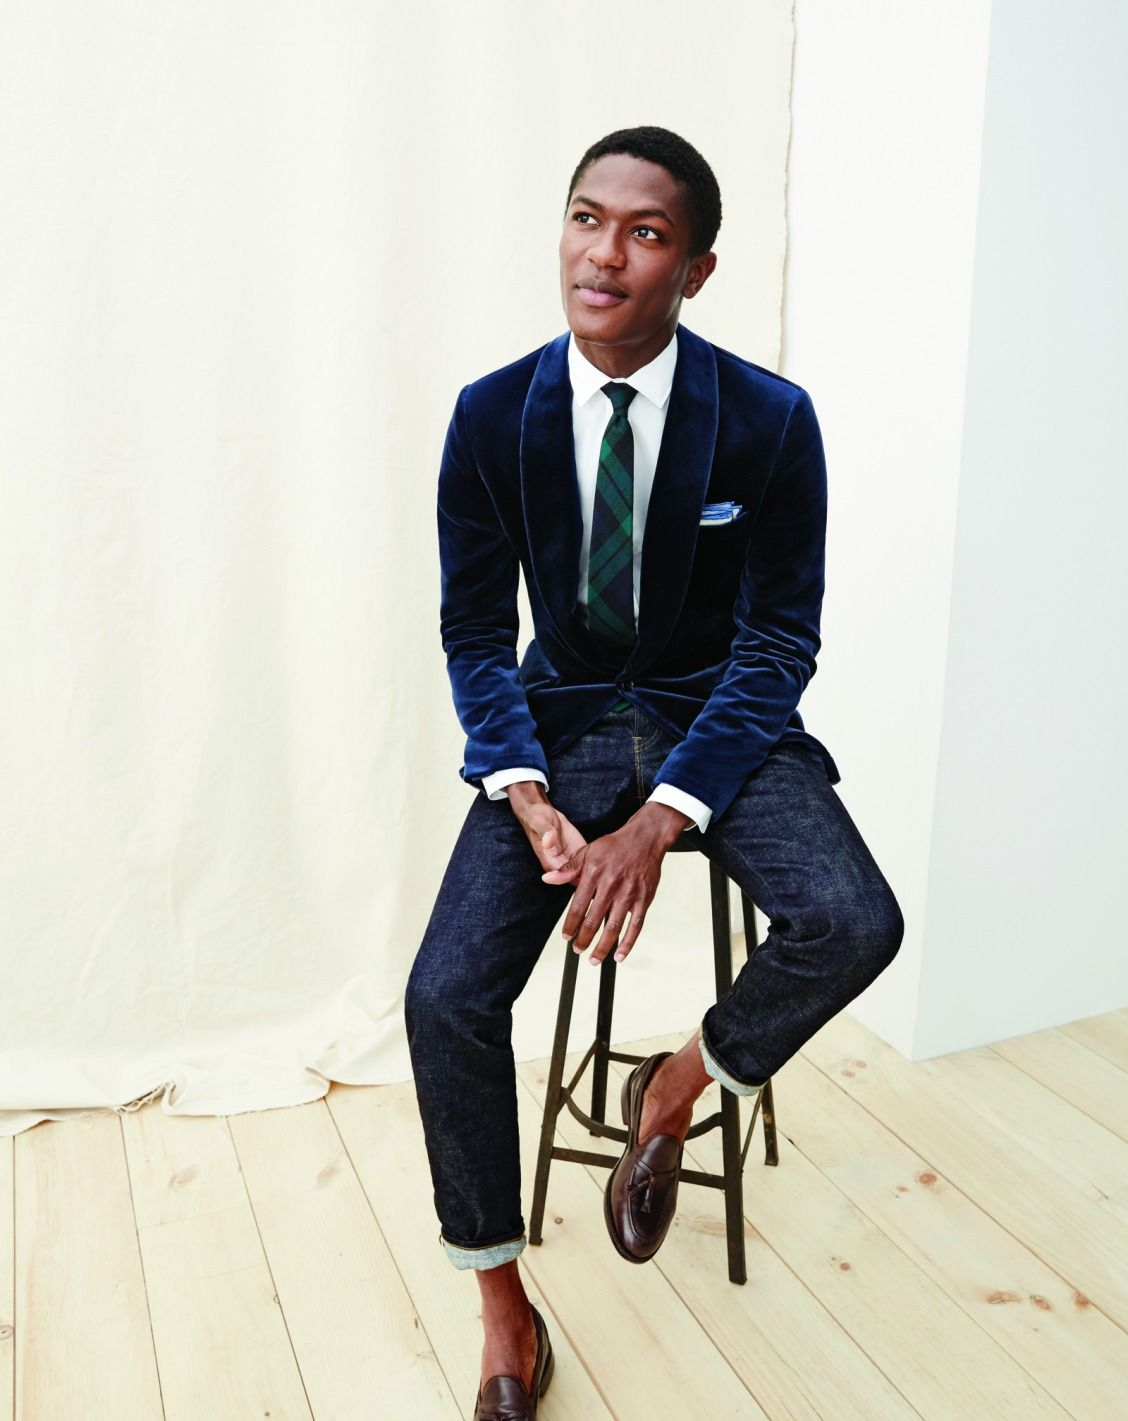 53637b683cc75 The J.Crew men s slim Ludlow fit and sharp Japanese denim jeans make the  classic yuletide blazer look less precious and more modern.  howiludlow